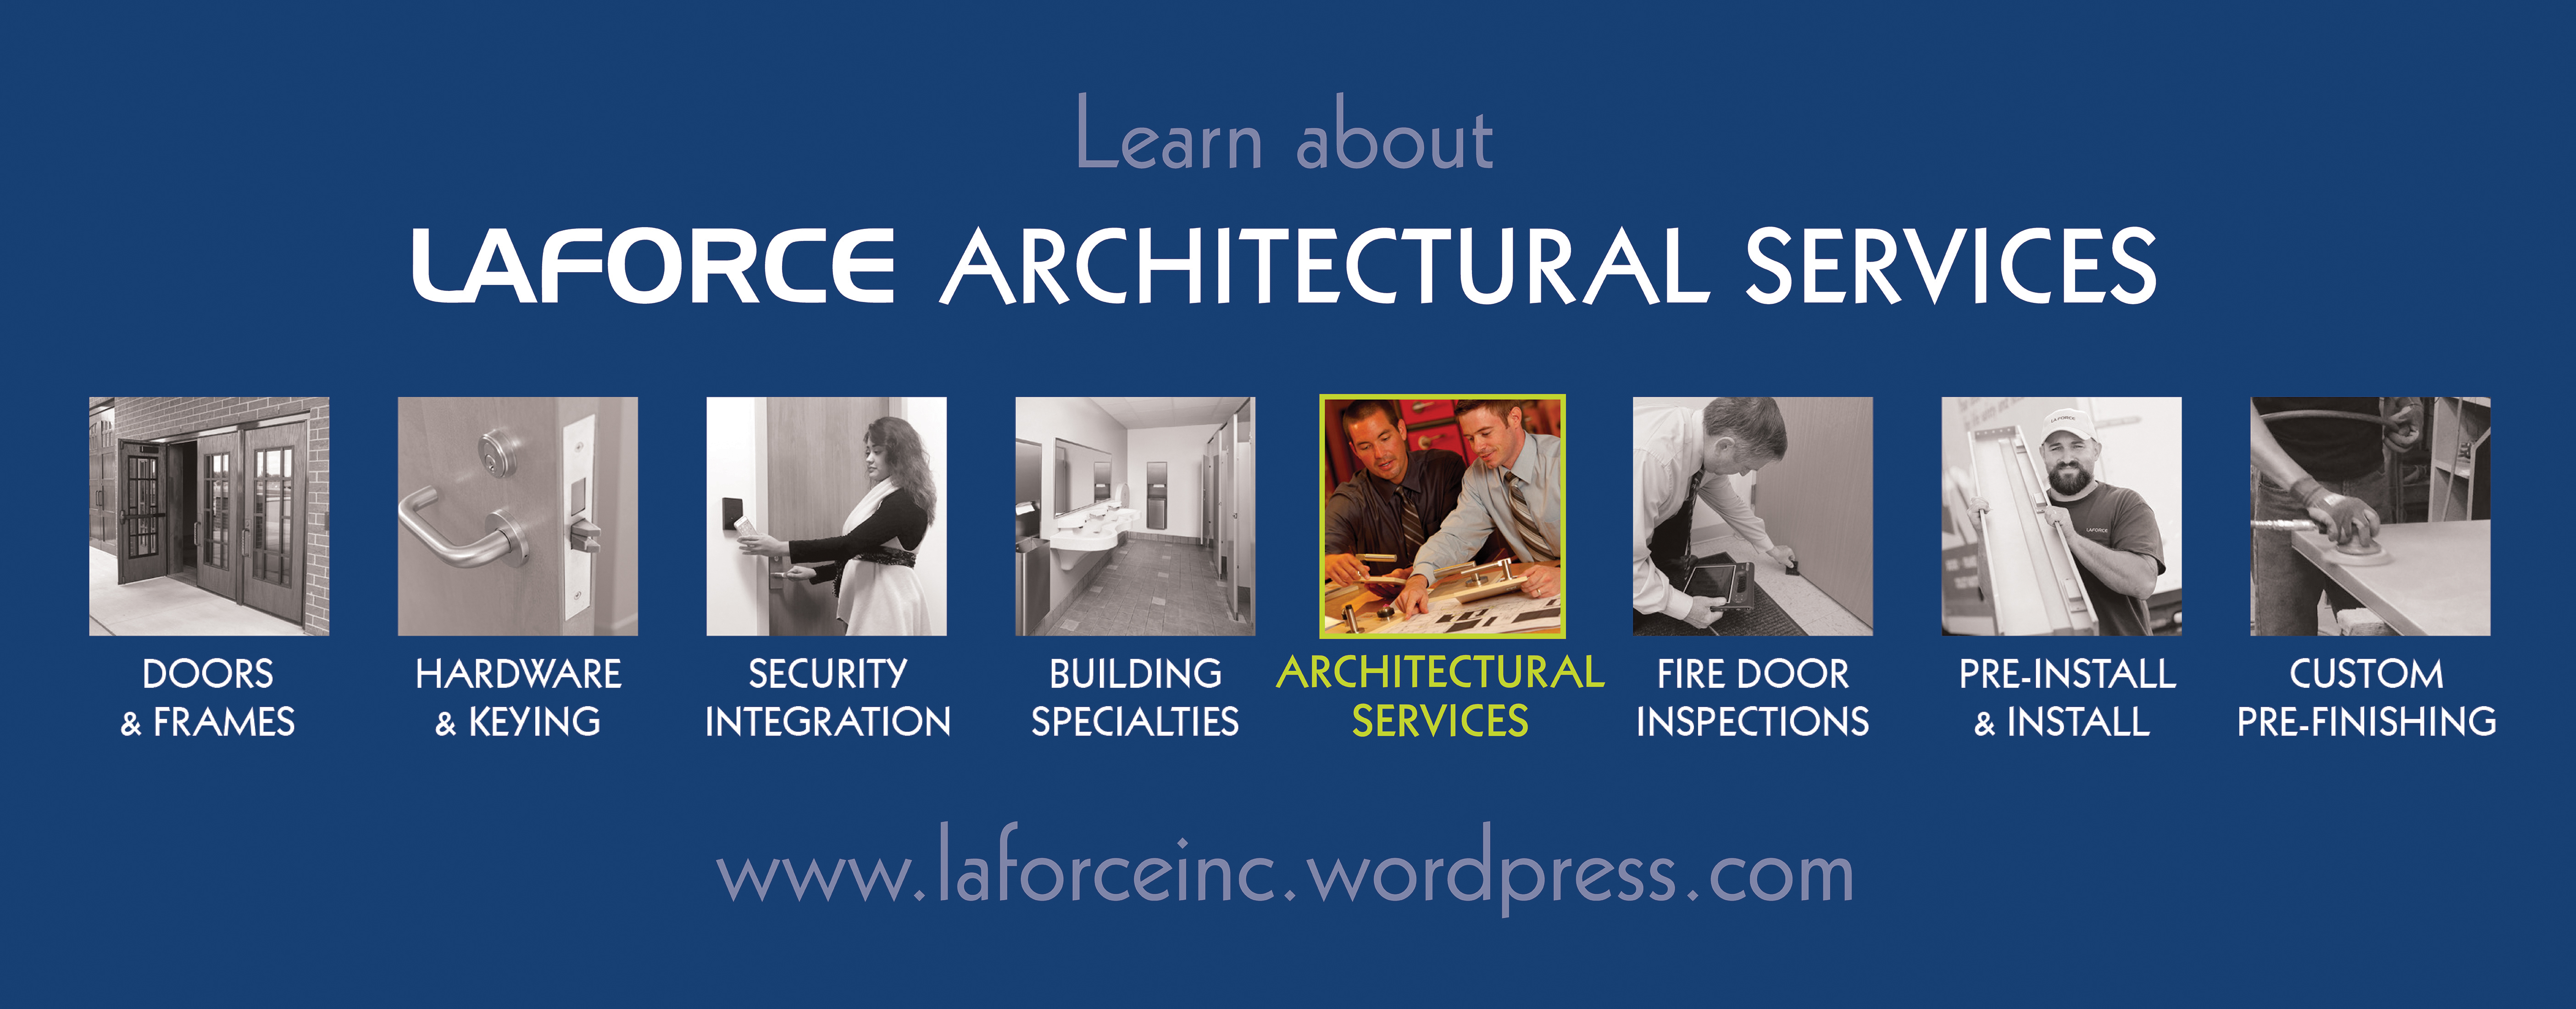 La force bing images for Online architectural services